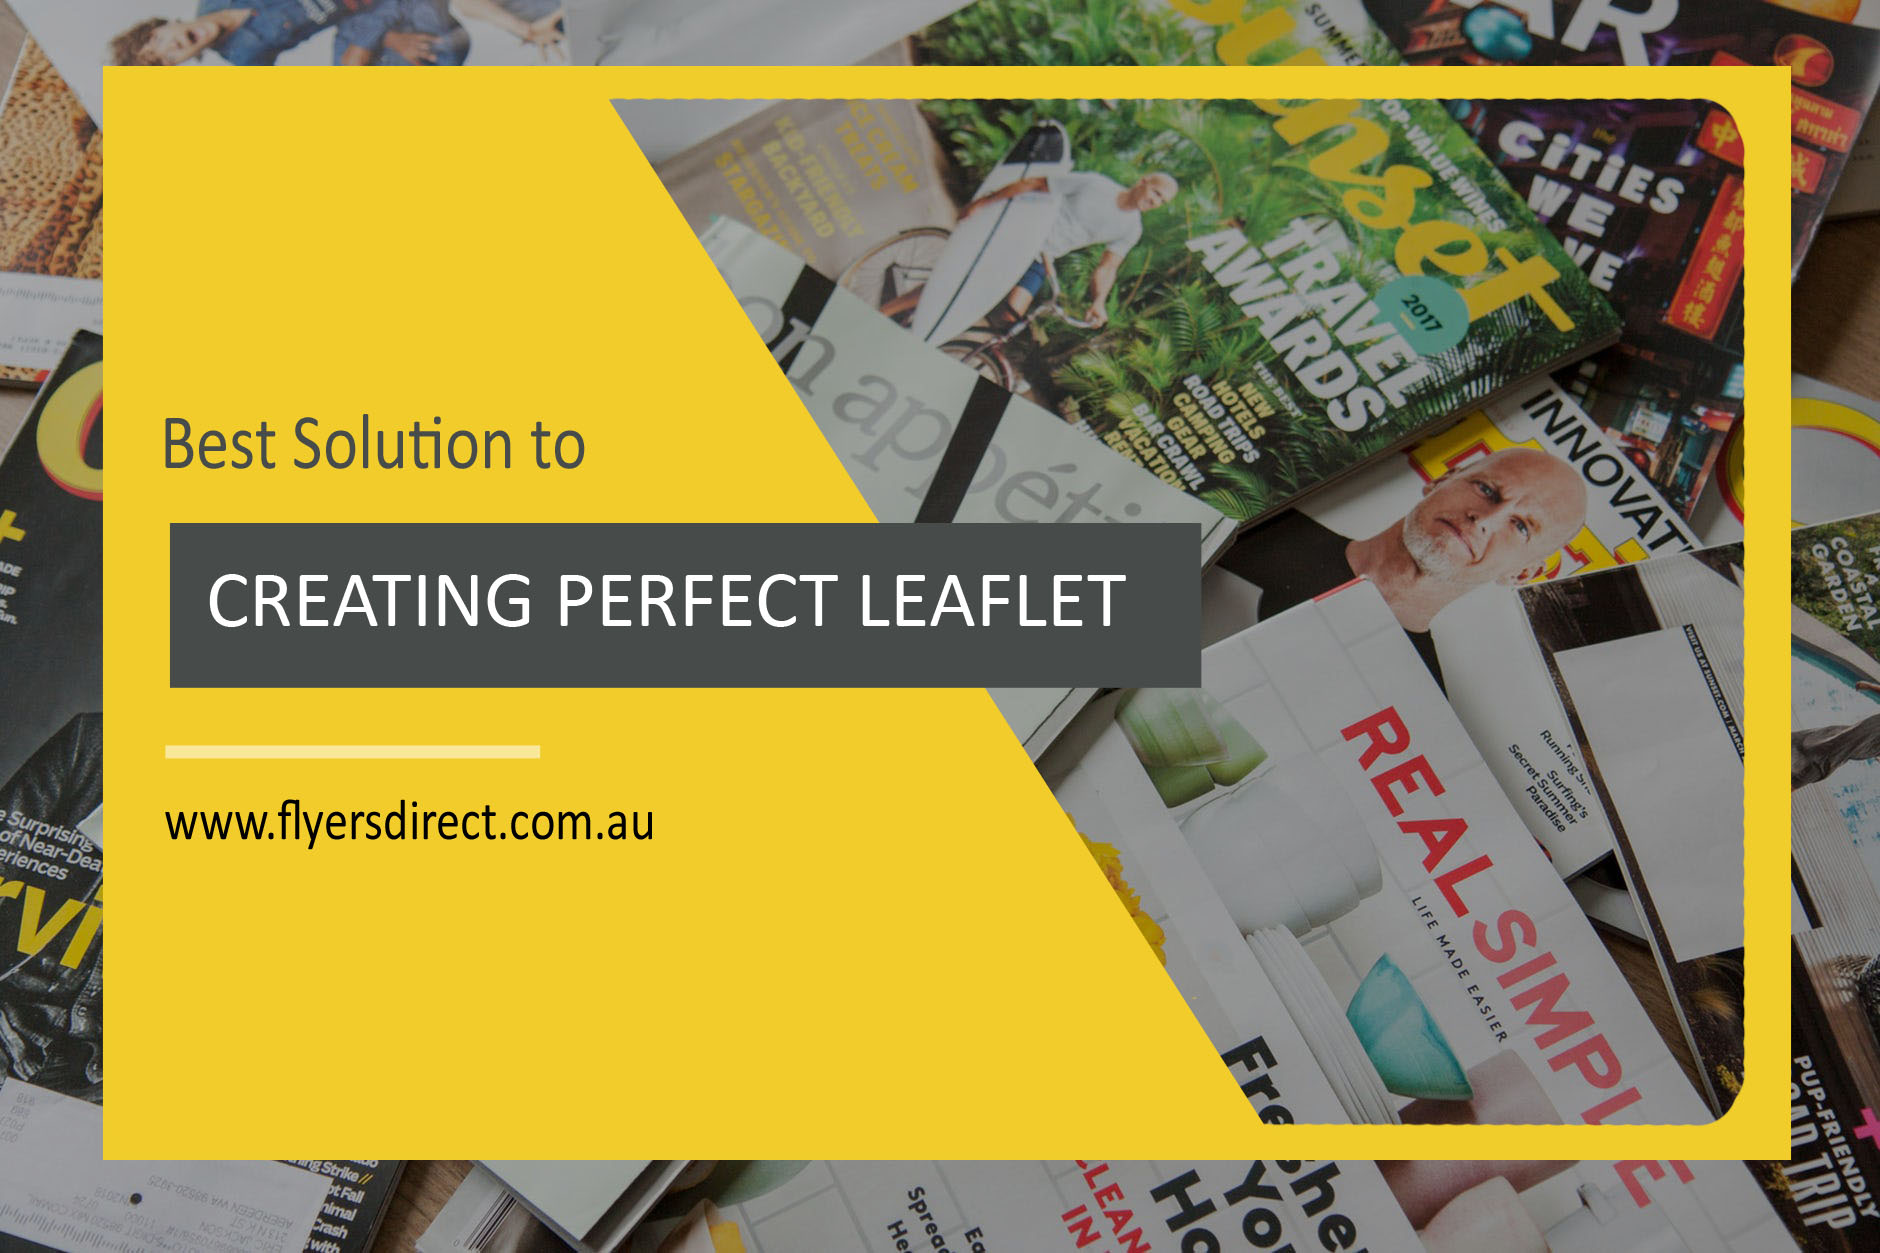 Best Solution to Creating that Perfect Leaflet